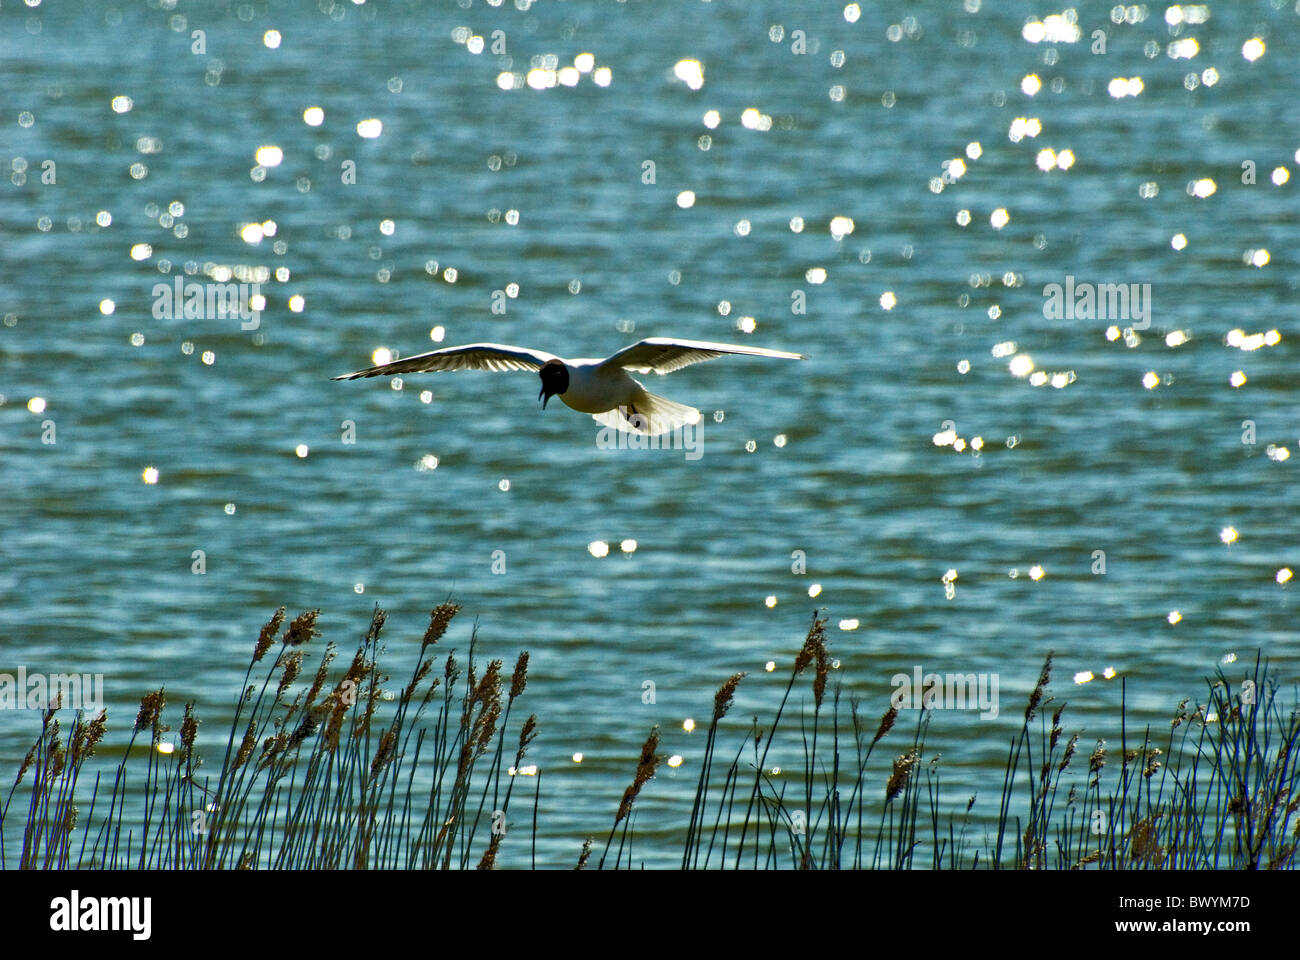 Black headed gull mid flight over glistening water and reeds or grasses - Stock Image